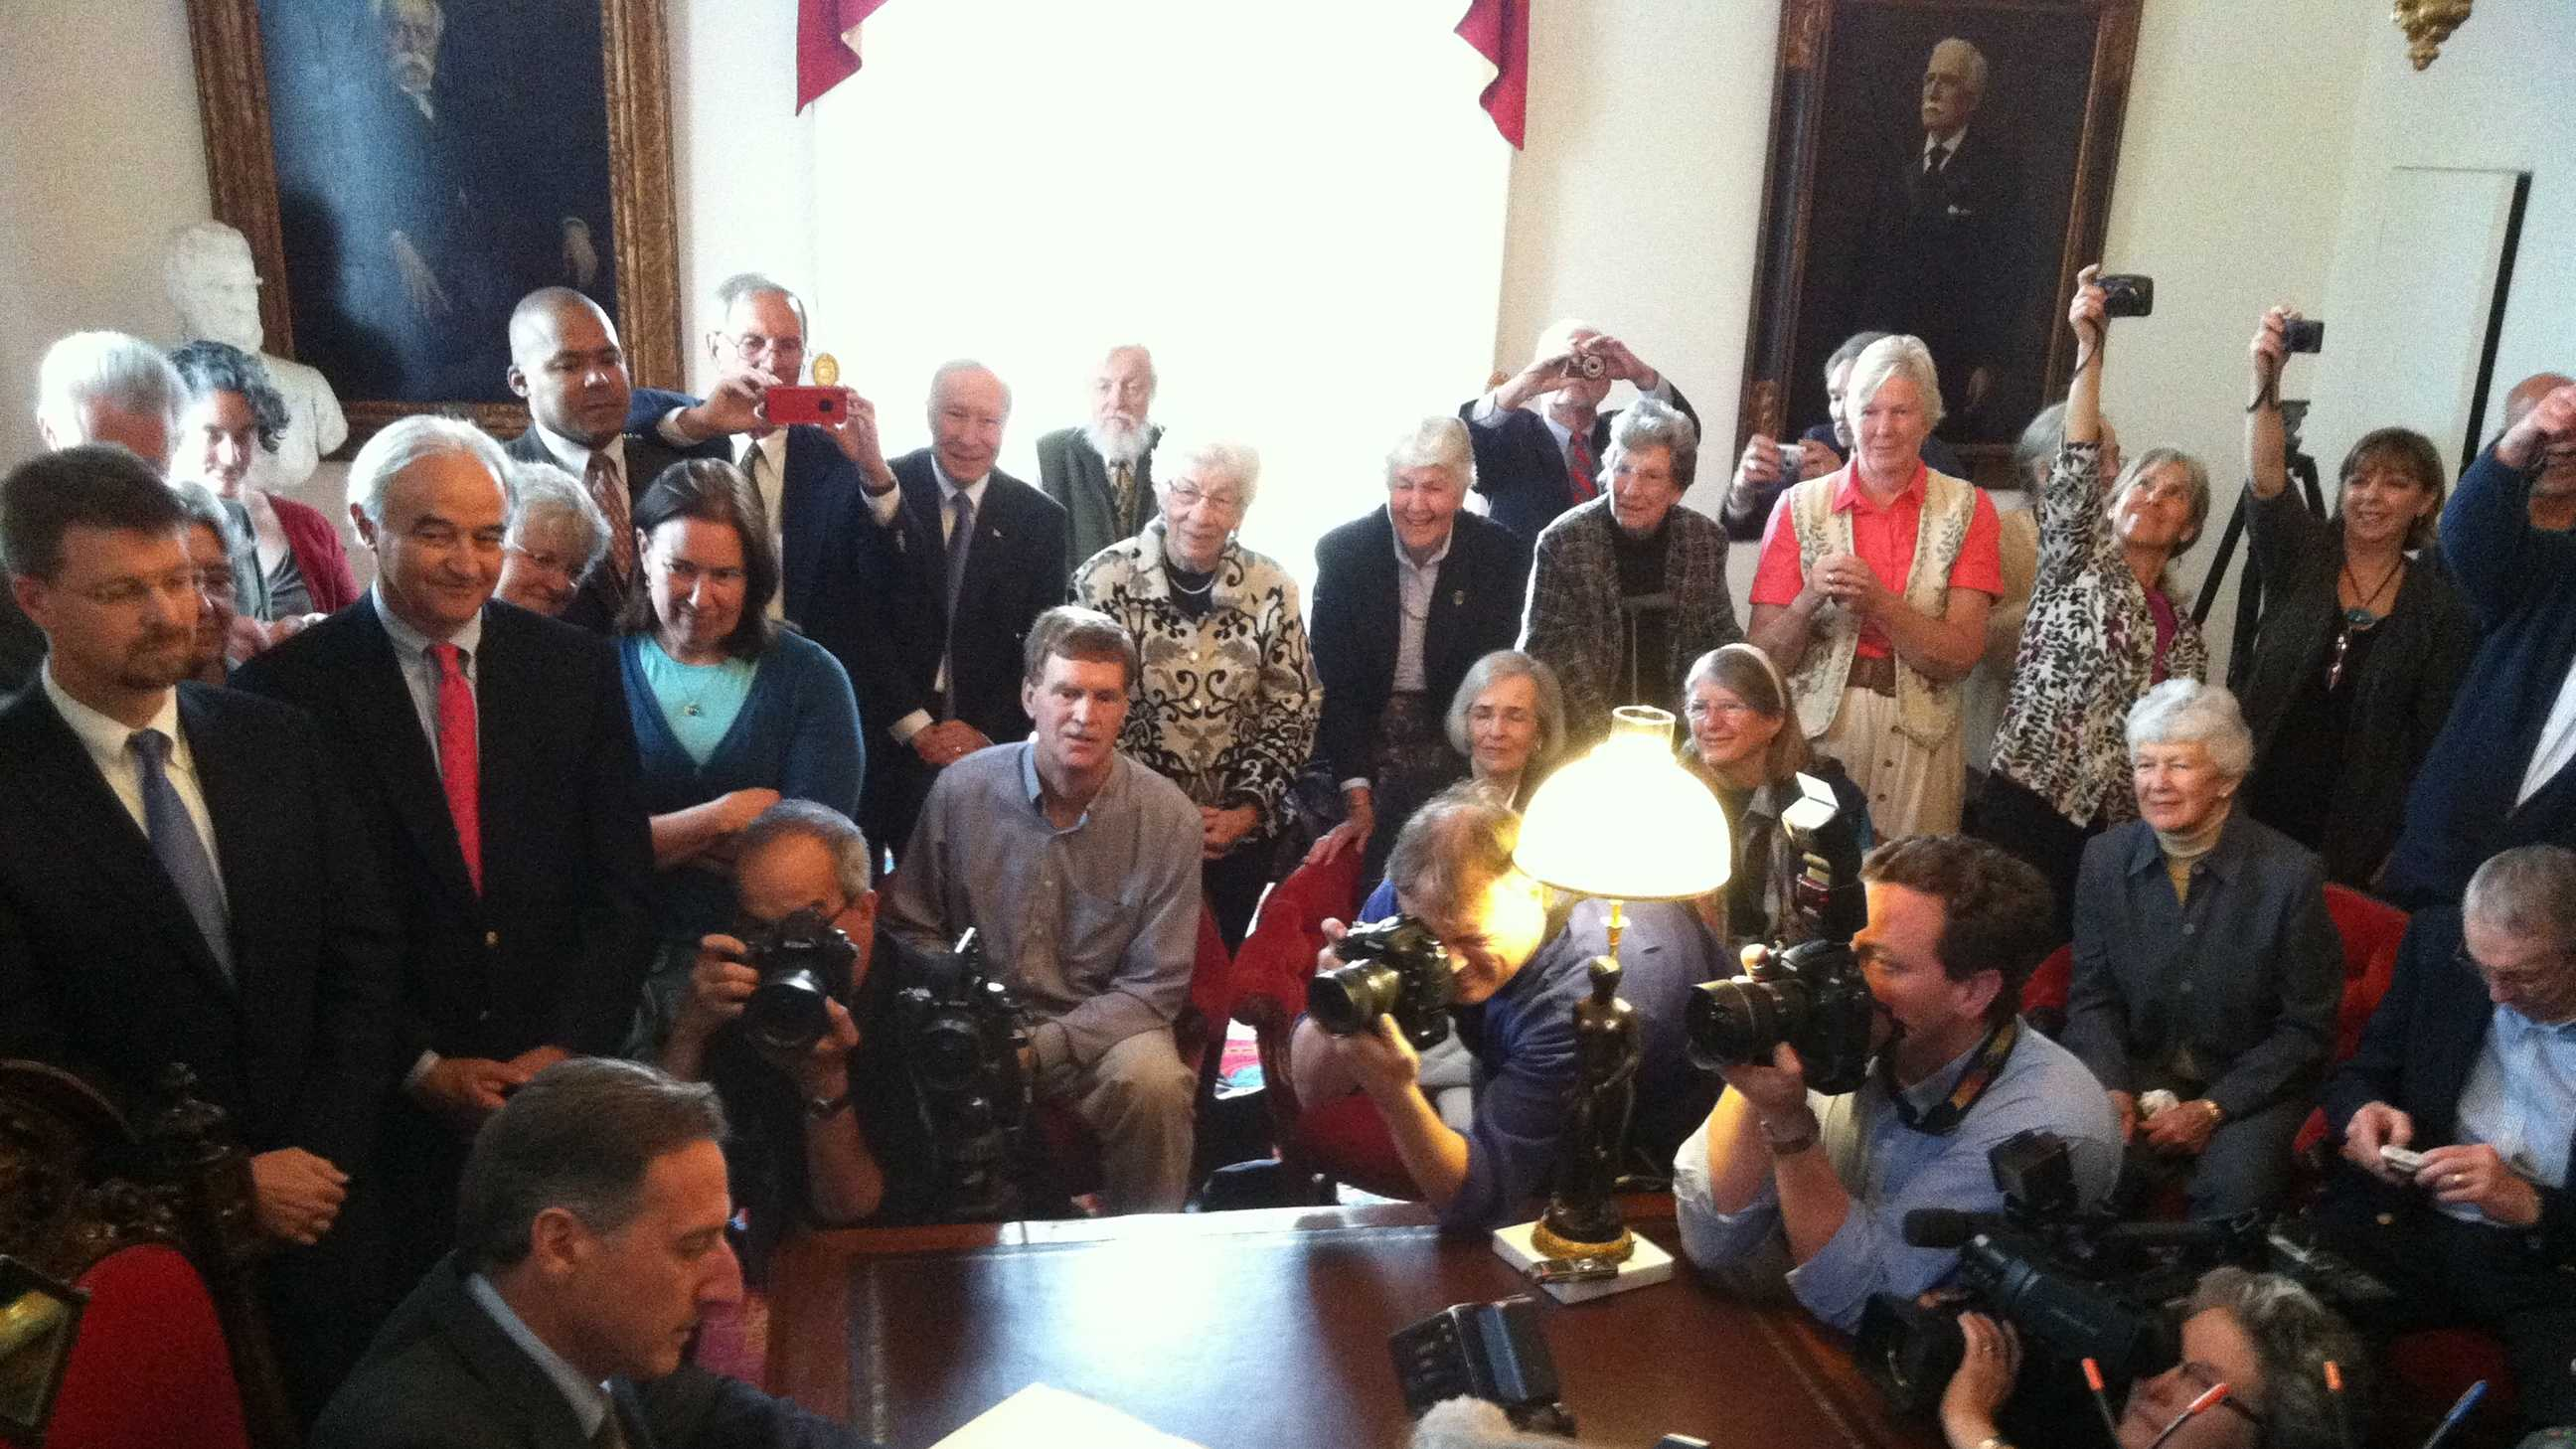 05-20-13 Vt. assisted suicide bill signed into law - img